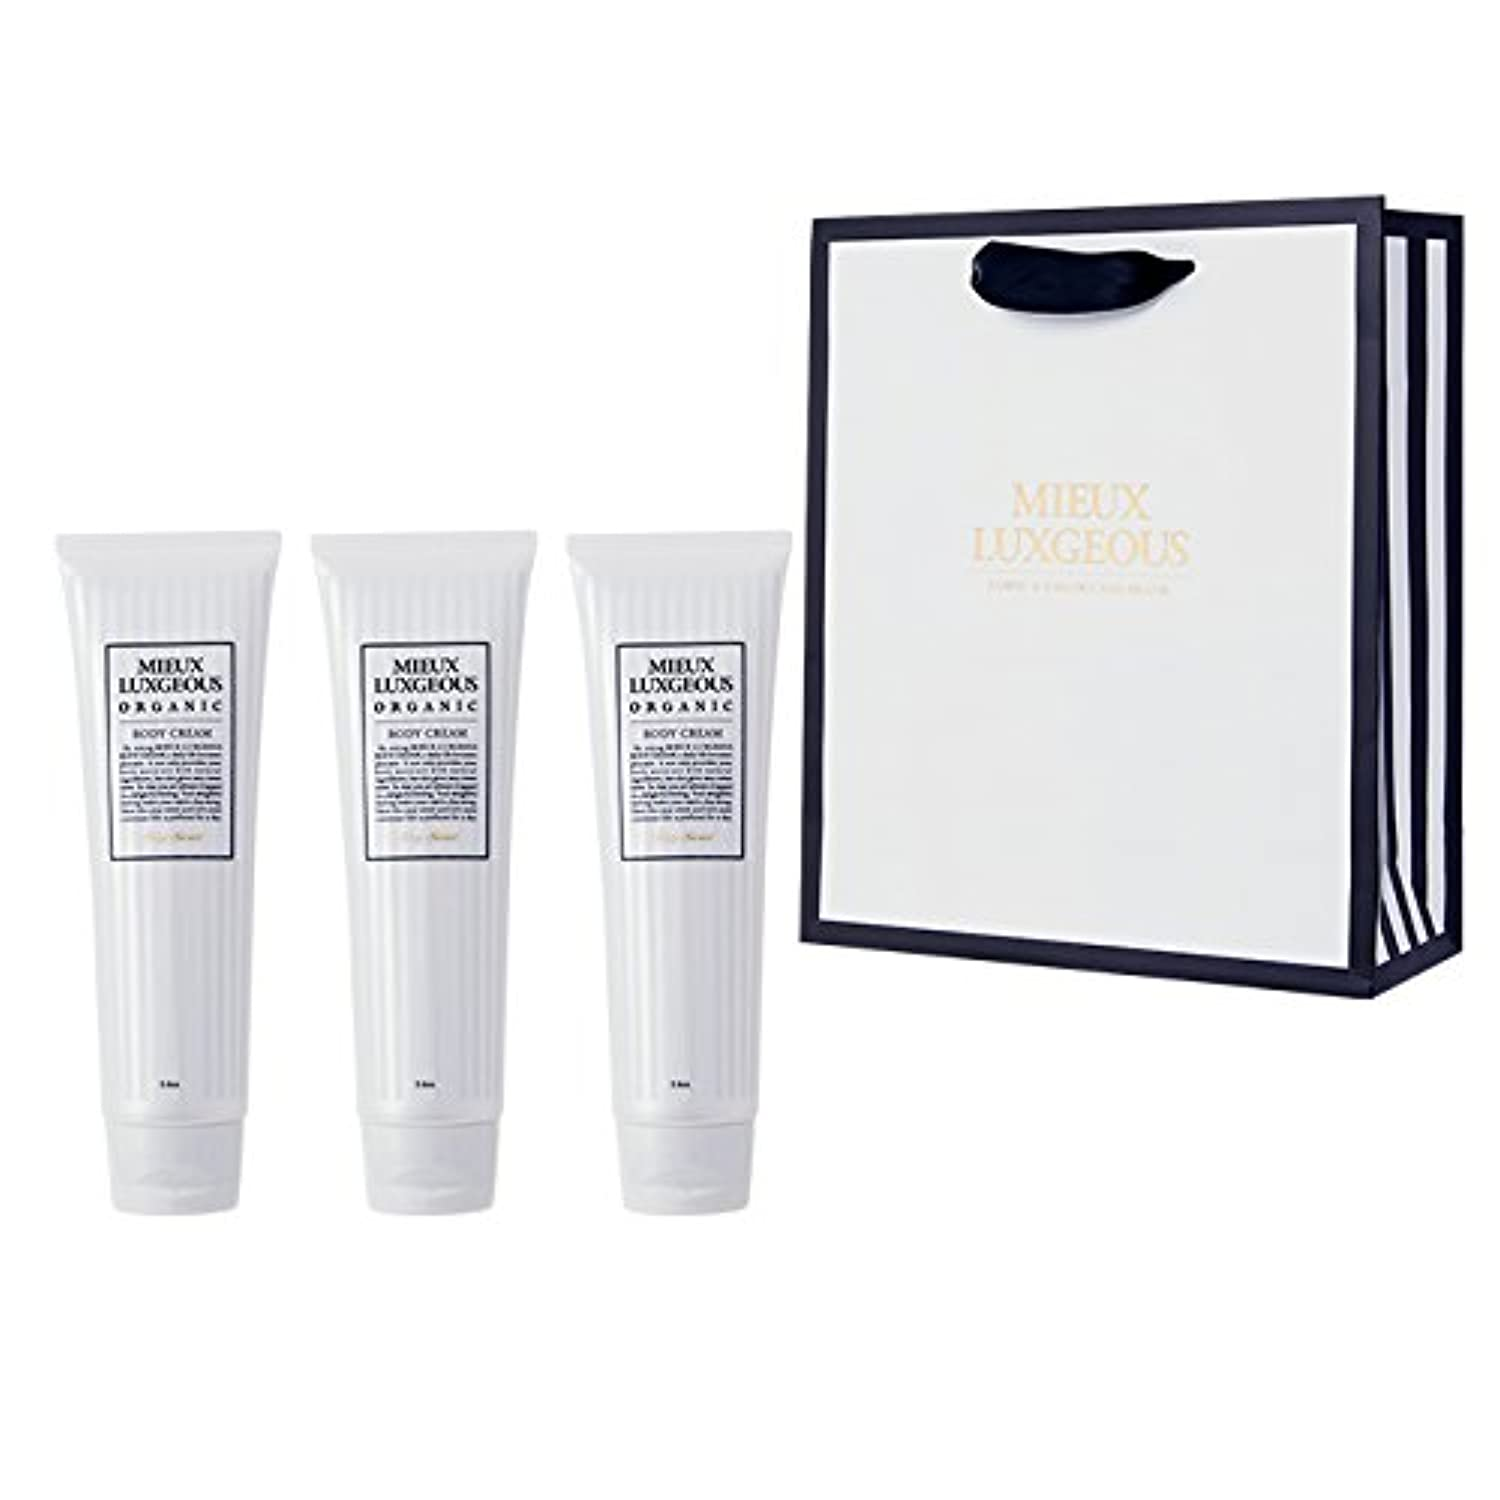 Body Cream 3本set with Paperbag02